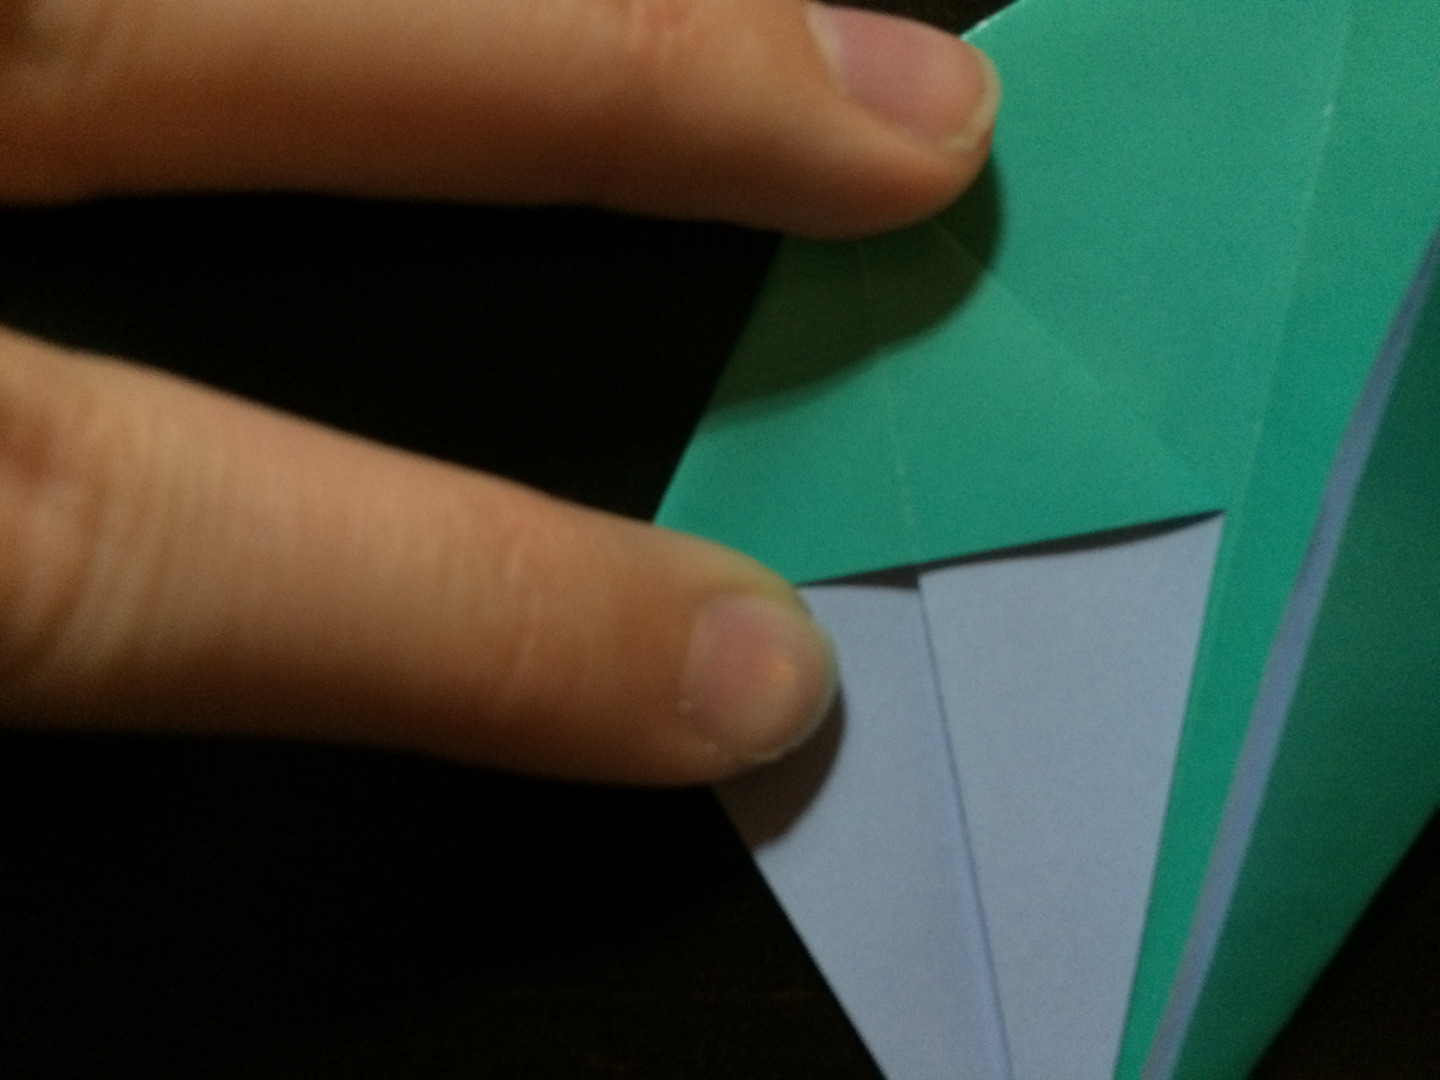 Picture of Fold Six: Similar to Fold Three